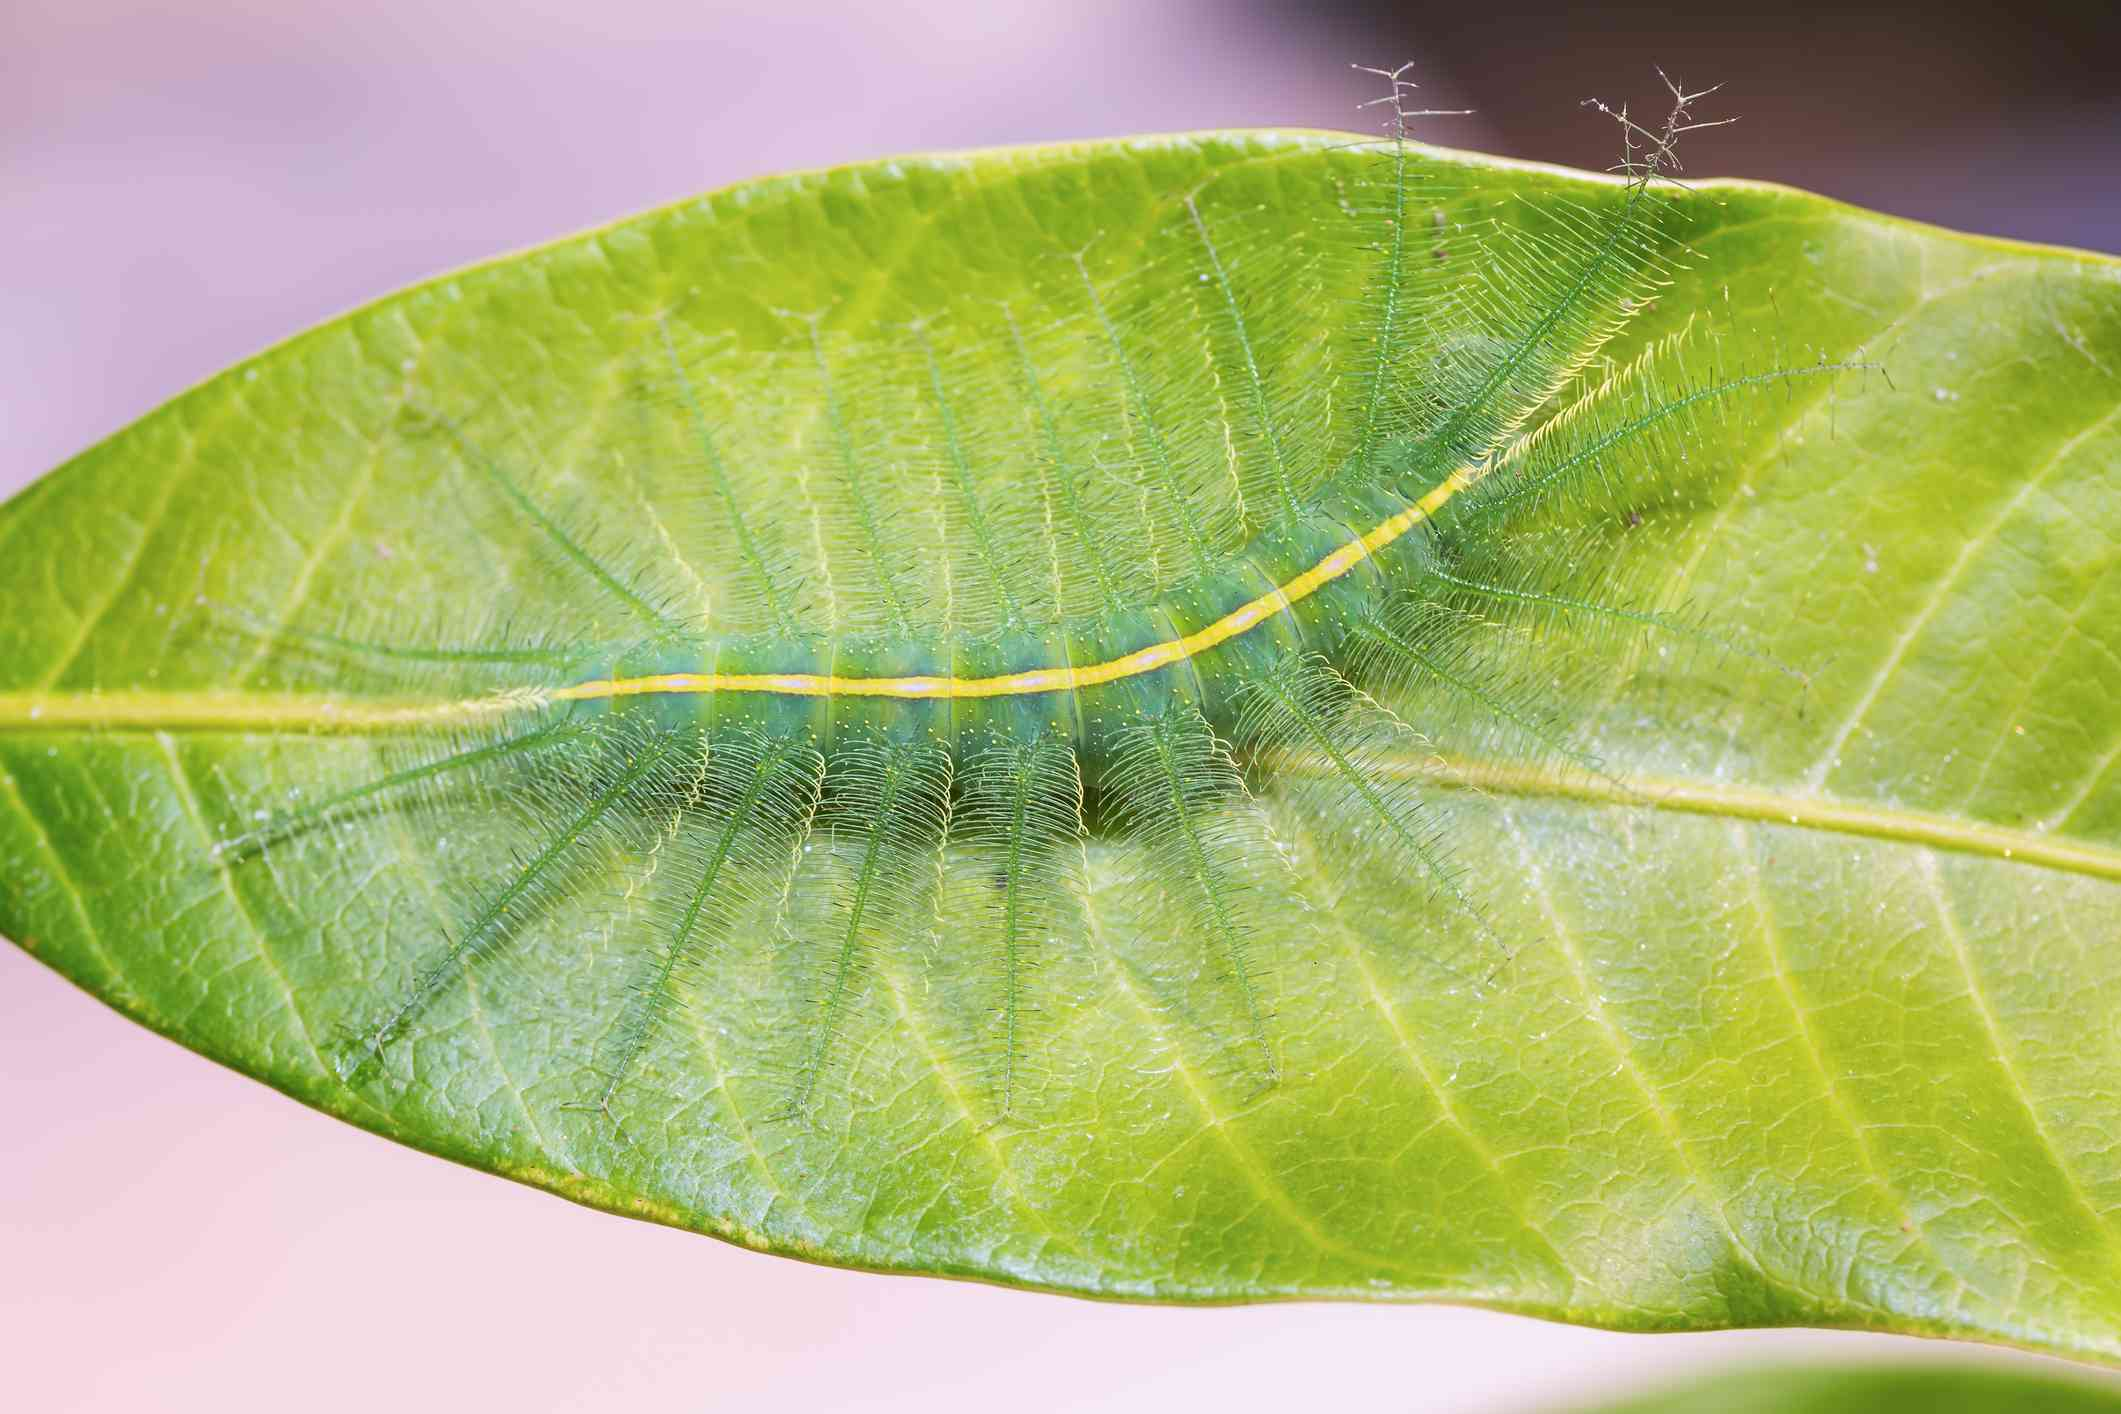 furry green caterpillar extended on large mango leaf